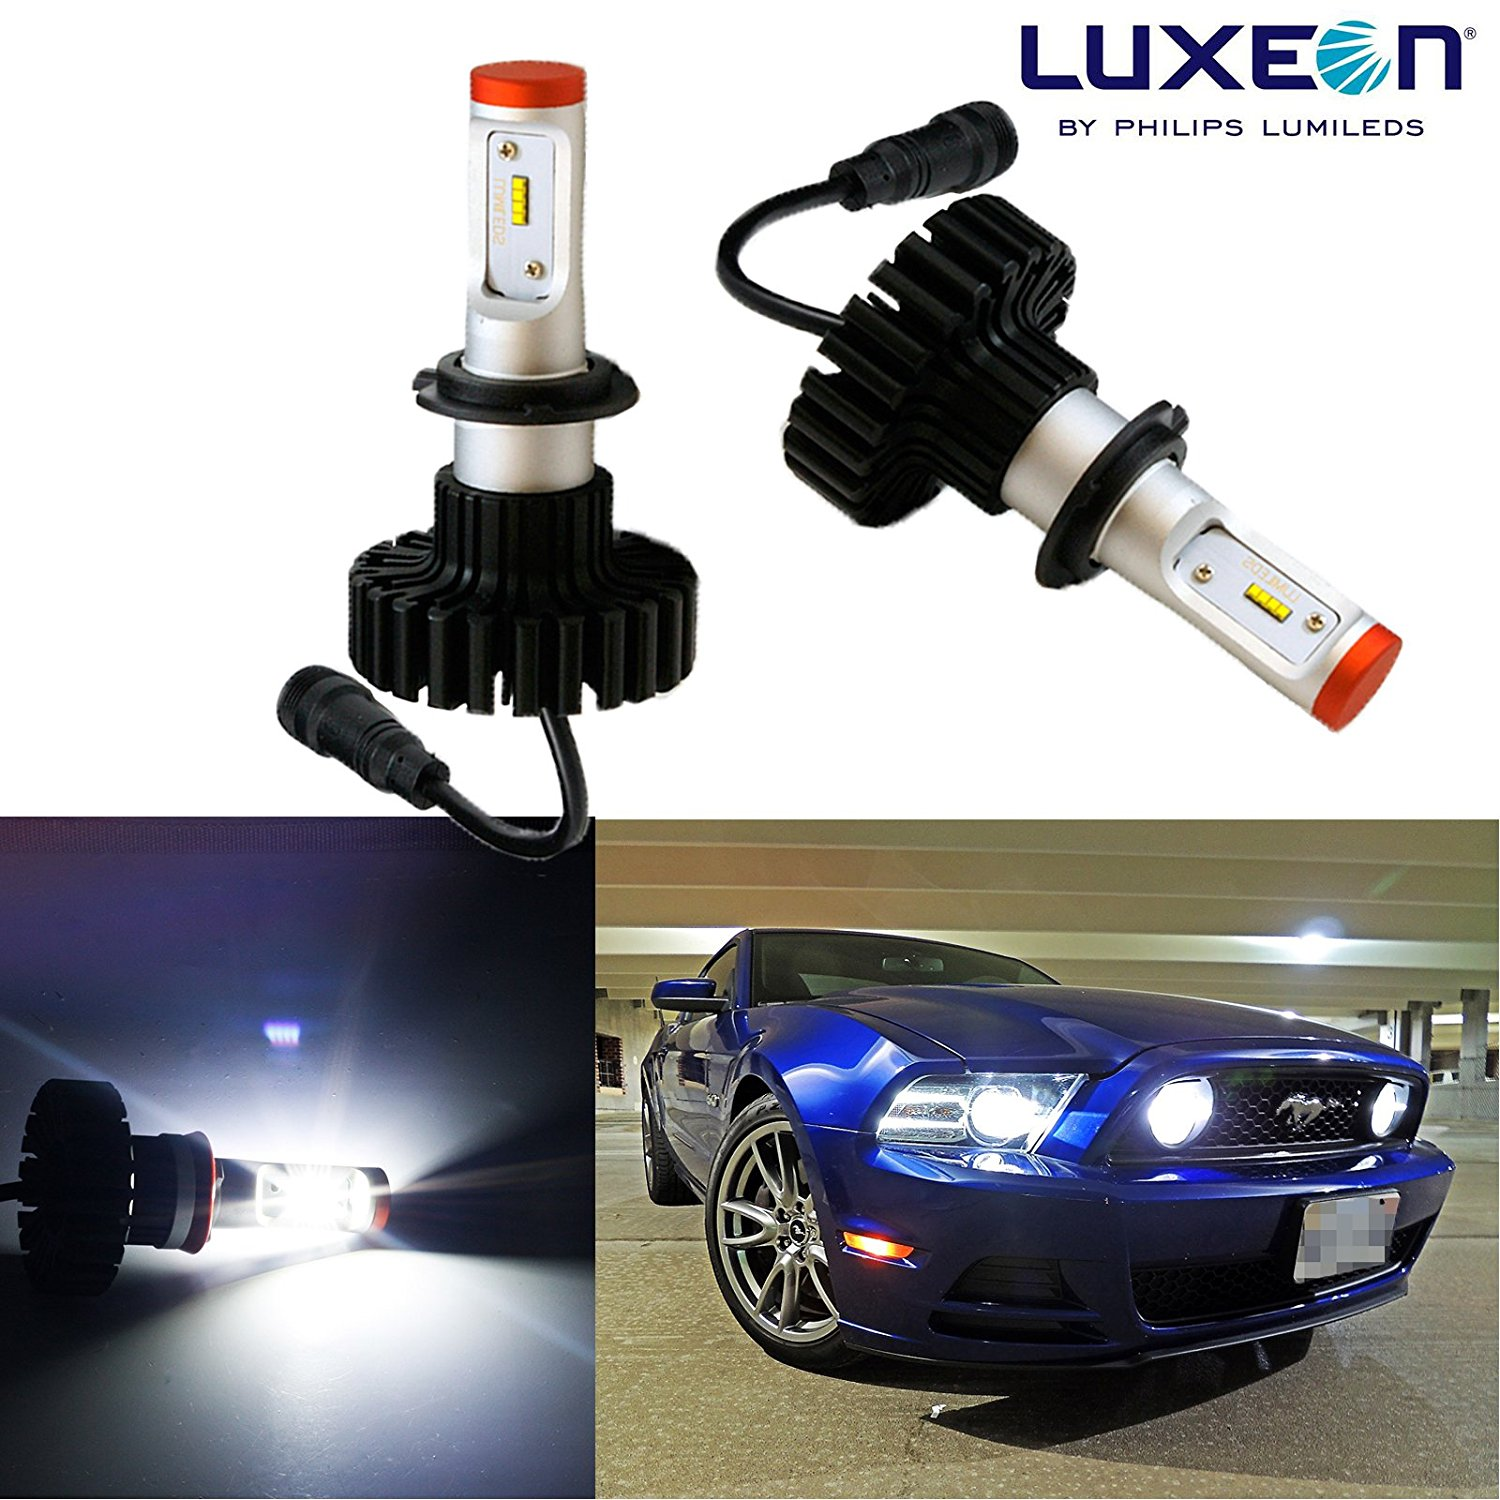 Xotic Tech 2x White 6000K Philips Luxen160W 9005 9006 9145 H10 High Power LED Low Beam Headlight Bulbs (Newest Model)